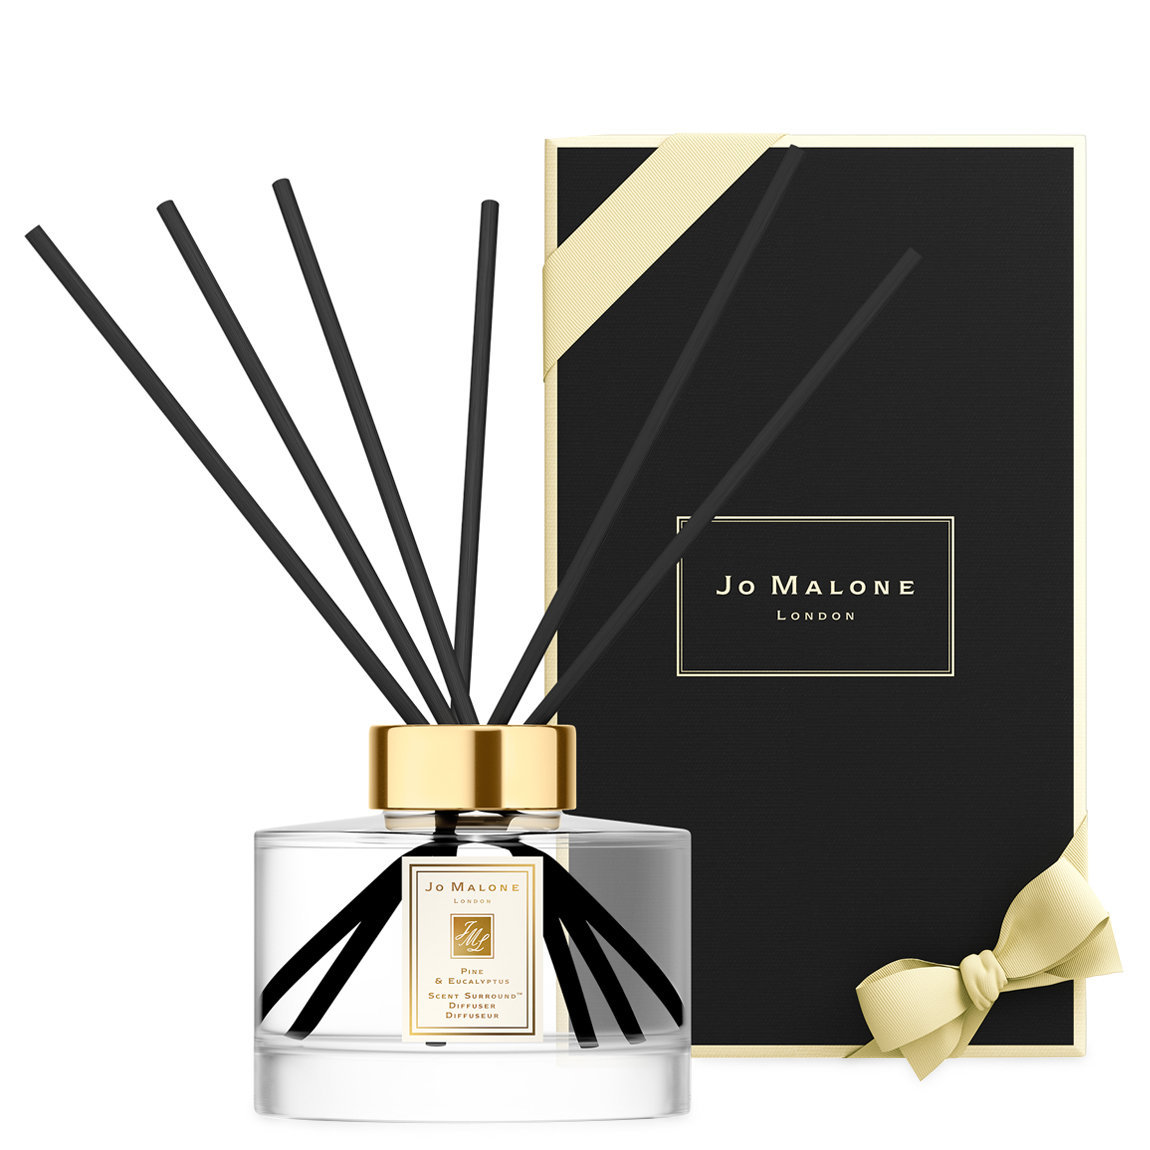 Jo Malone London Pine & Eucalyptus Scent Surround Diffuser product swatch.